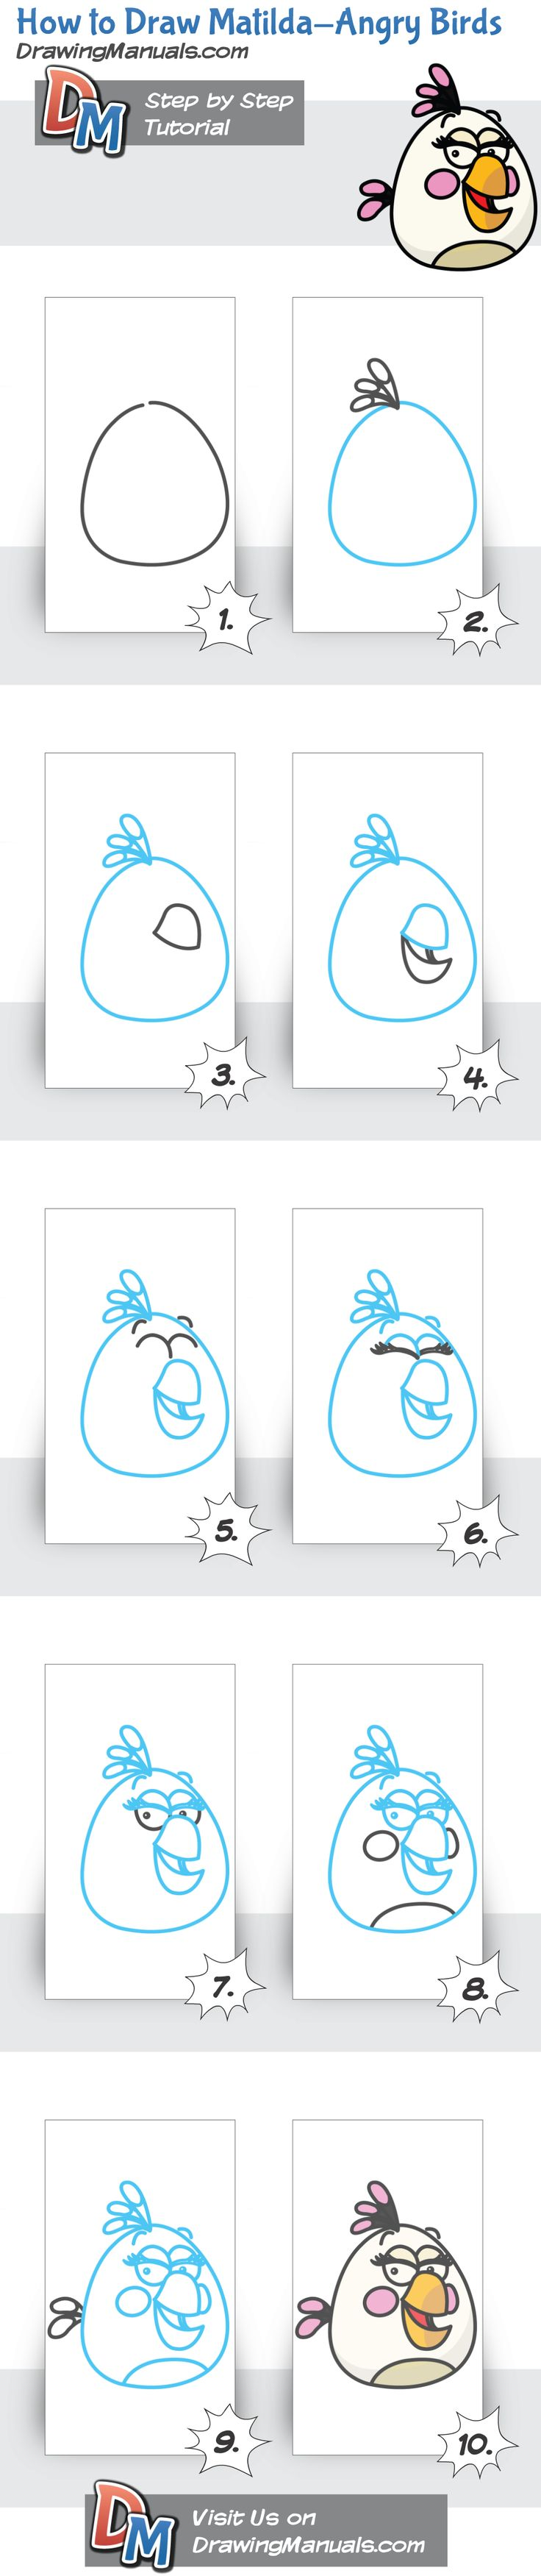 How to Draw Matilda-Angry Birds